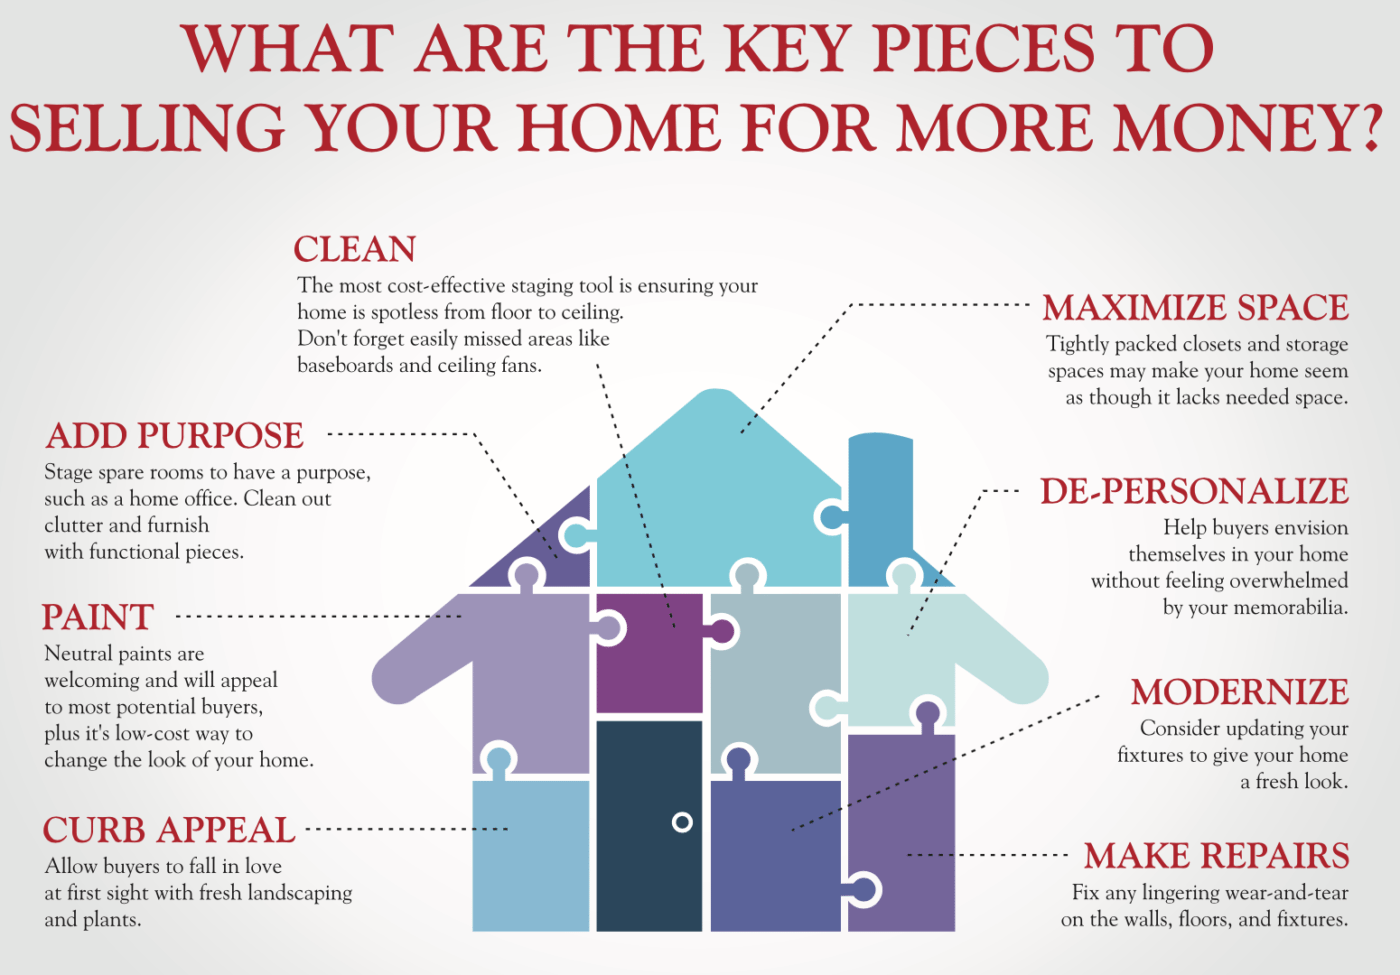 Pricing your home to sell for the most!